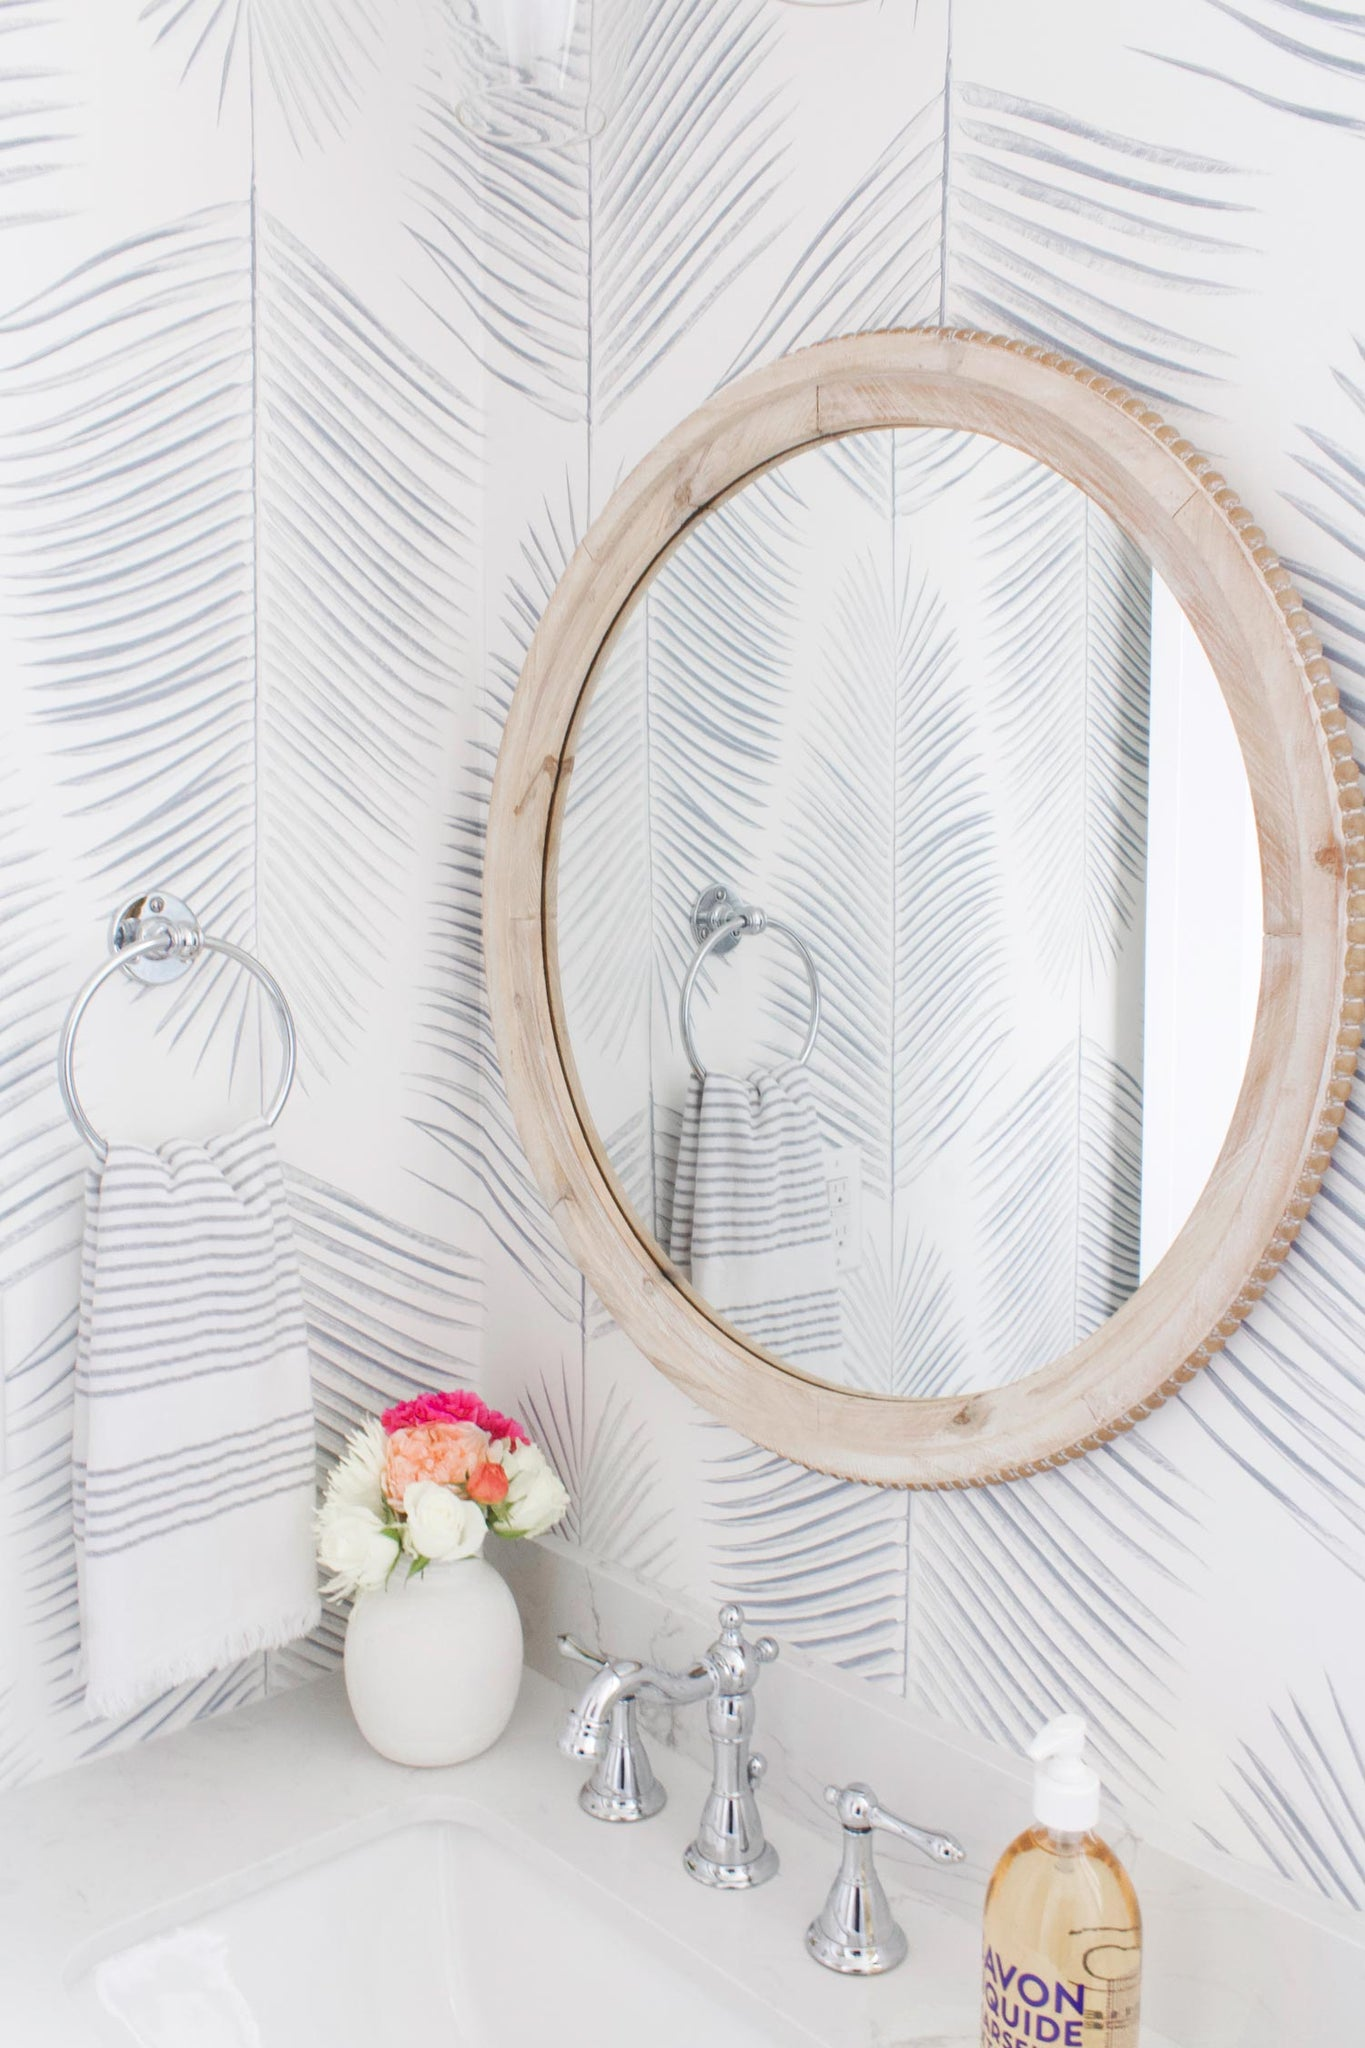 Studio McGee inspired coastal bathroom interior design with marble vanity, farmhouse style faucet and elegant light blue palm leaf design wallpaper